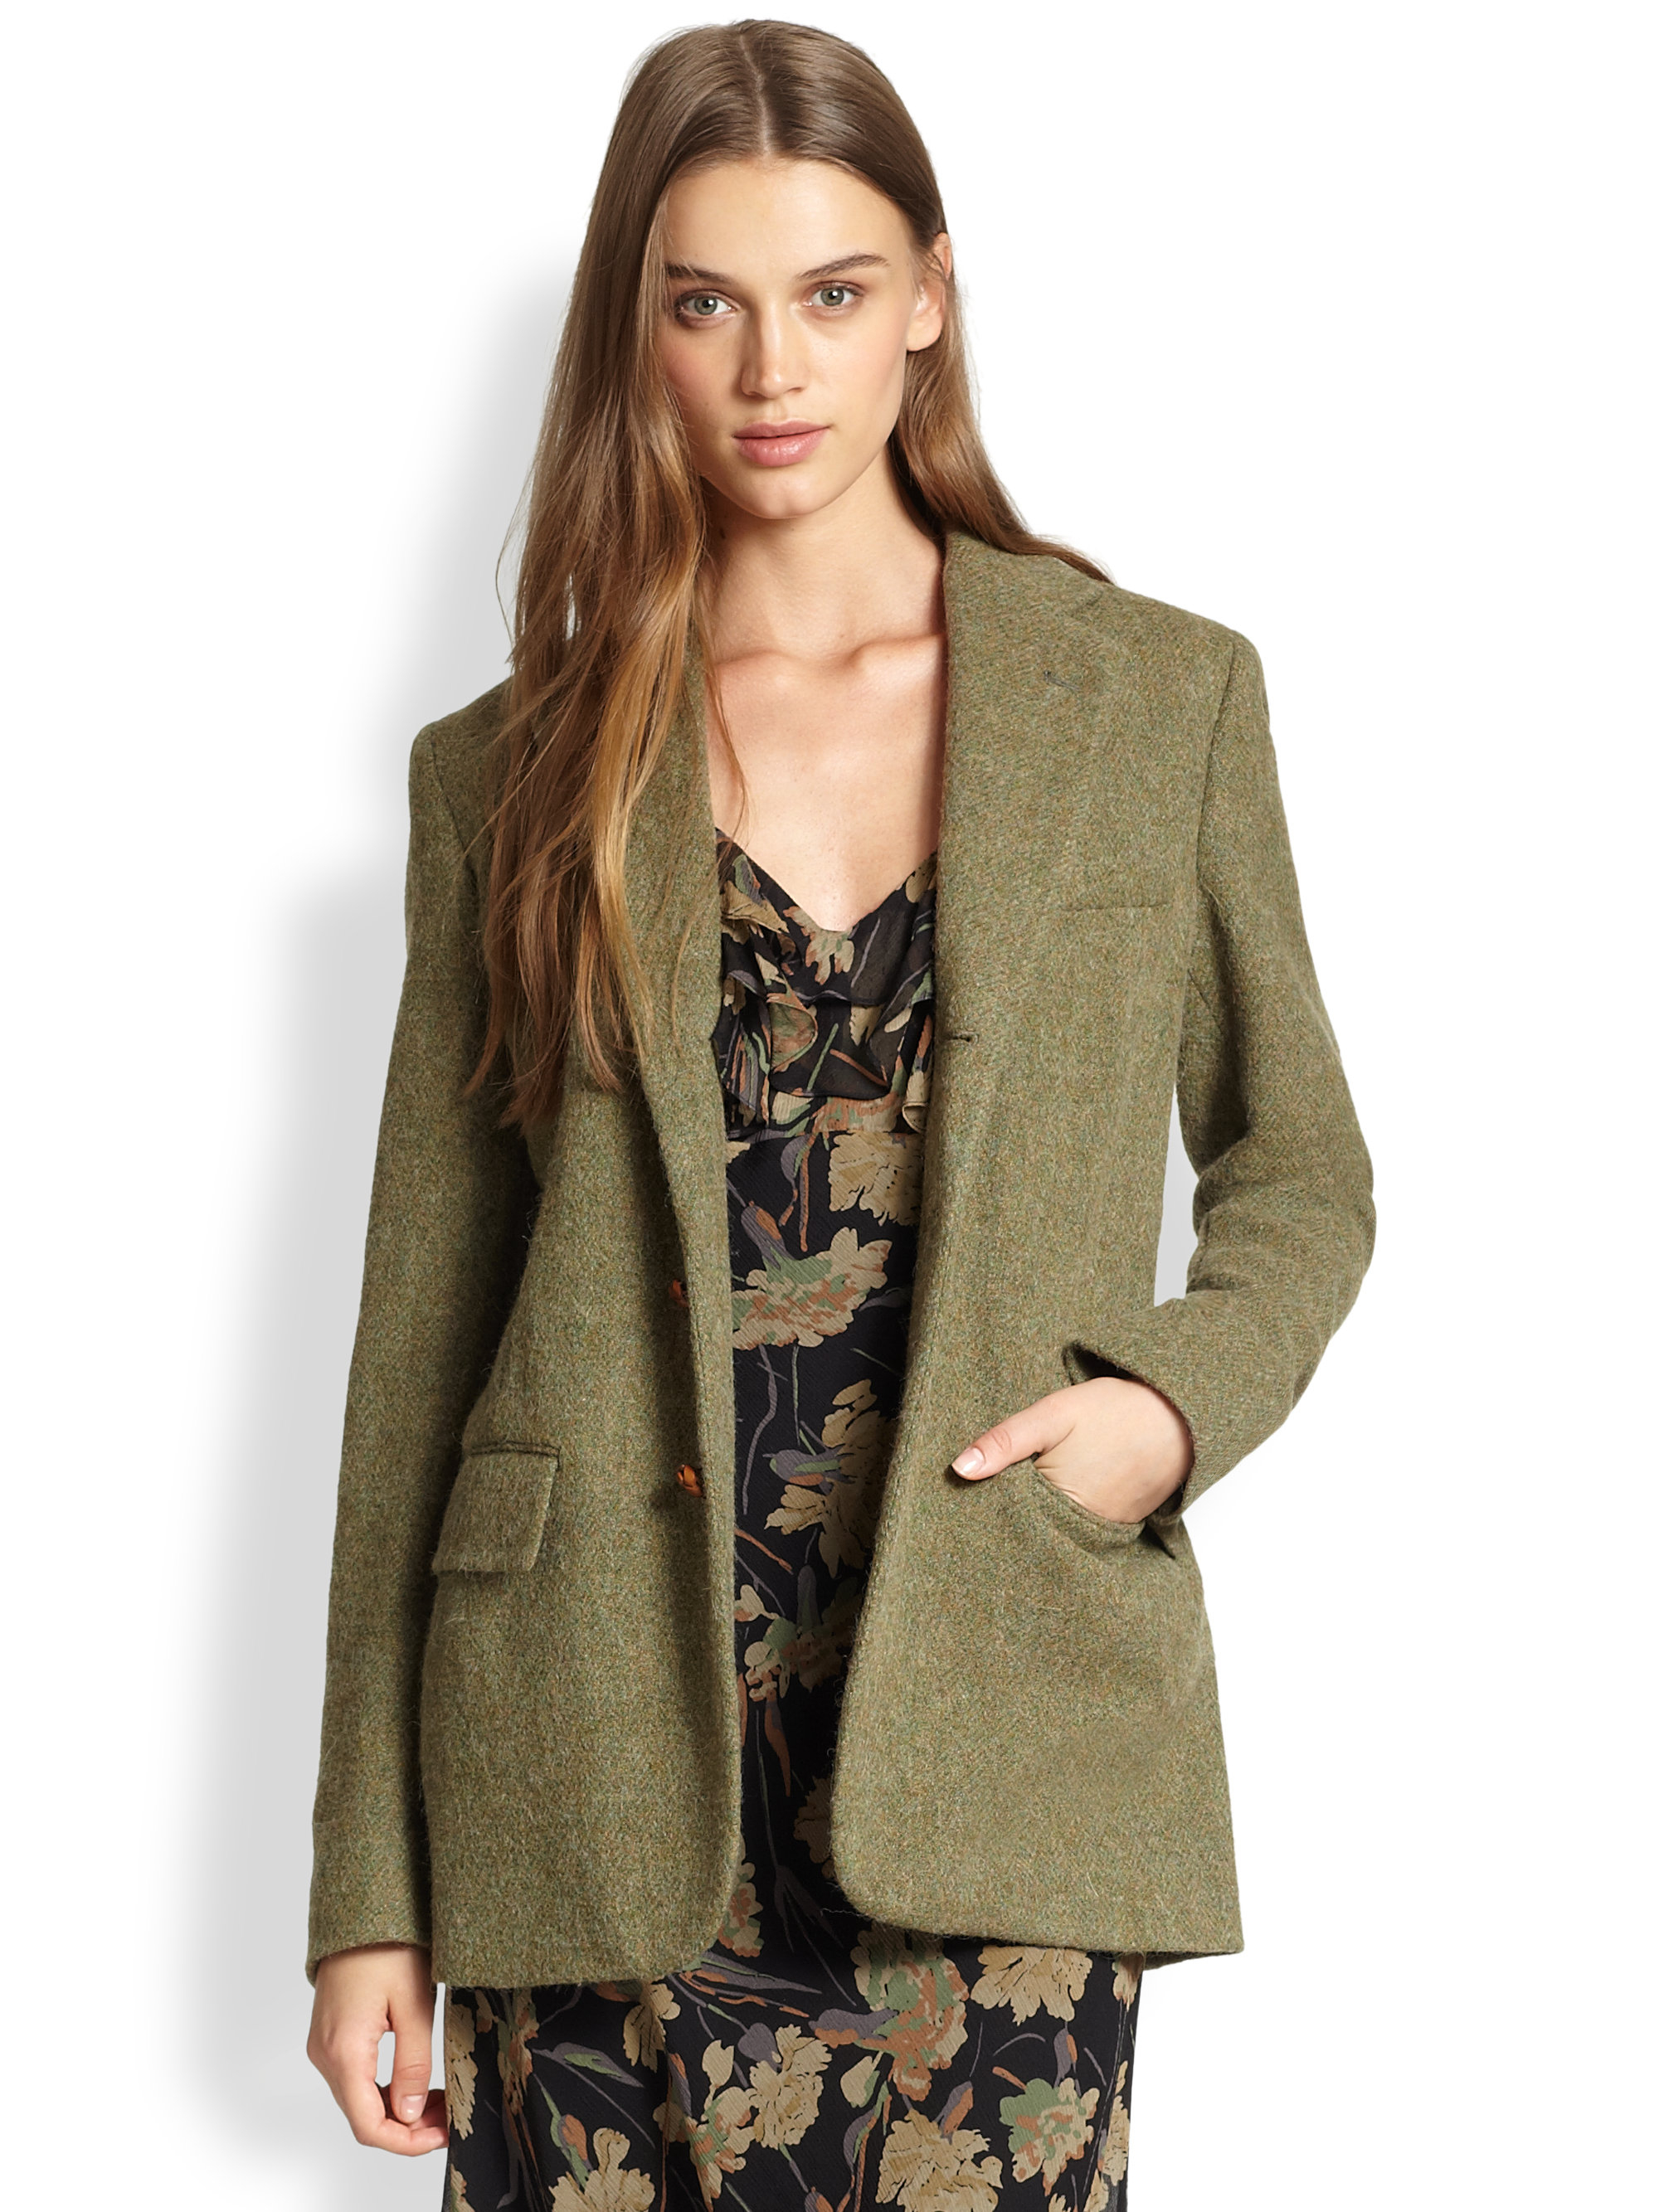 Polo ralph lauren Tweed Jacket in Green | Lyst